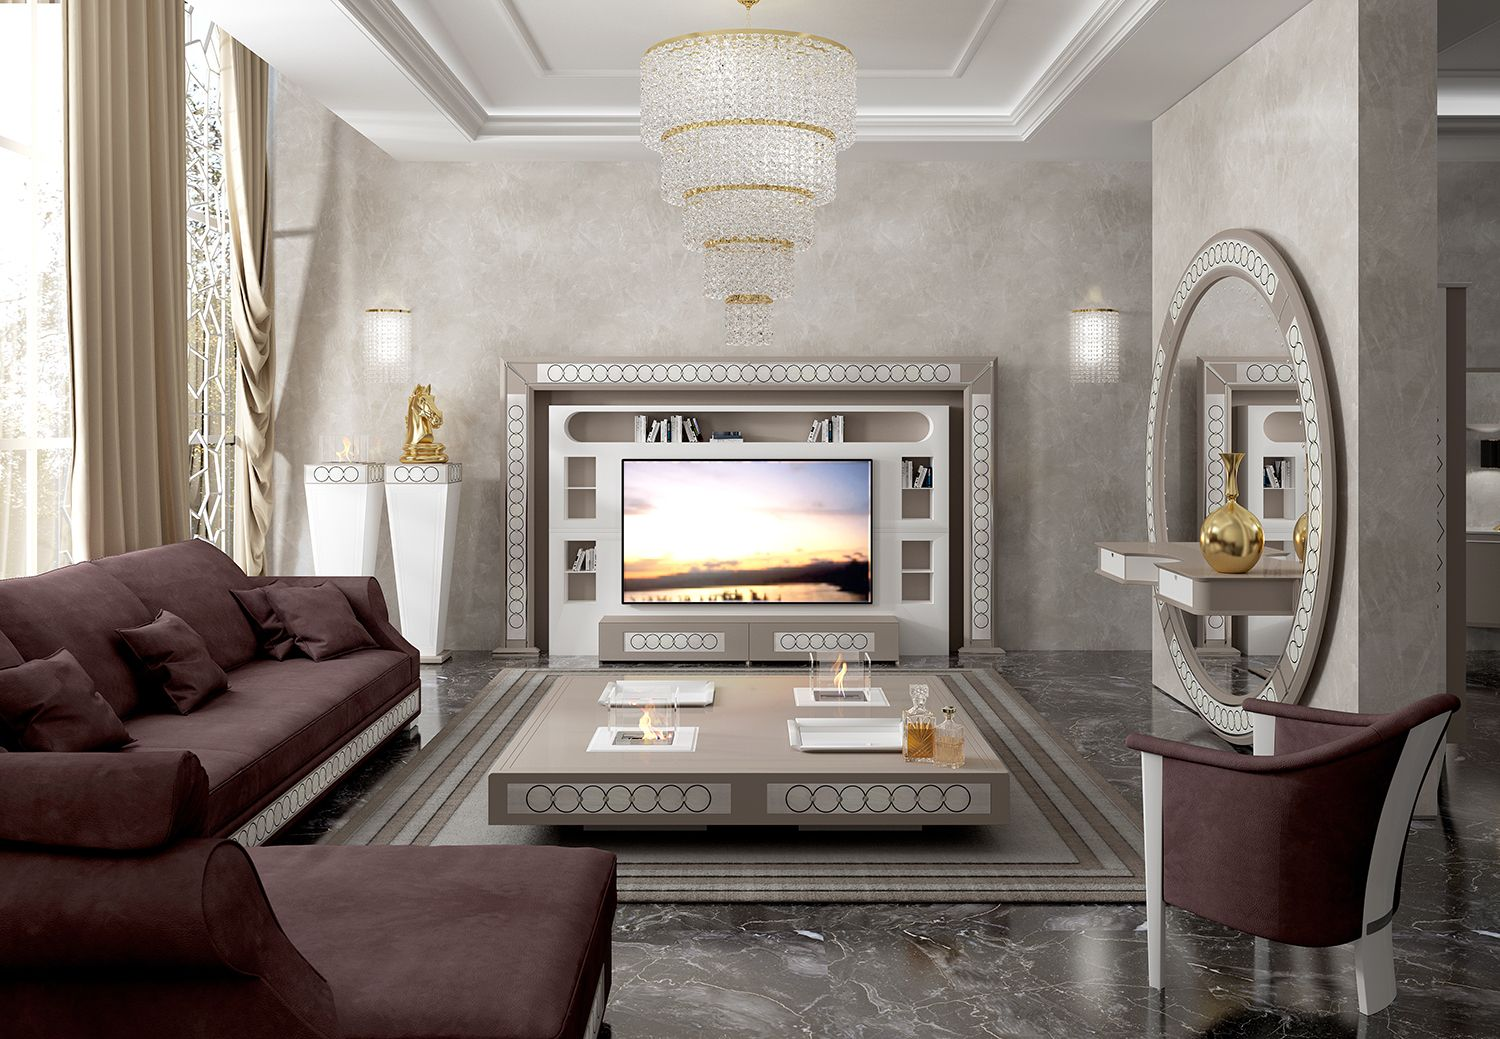 Luxury Livingroom With Big Tv Wall Unit For 75 Inches Tv Coffee Table With Brazier And Round Entrance Mirror A Living Room Tv Big Tv Wall Family Living Rooms